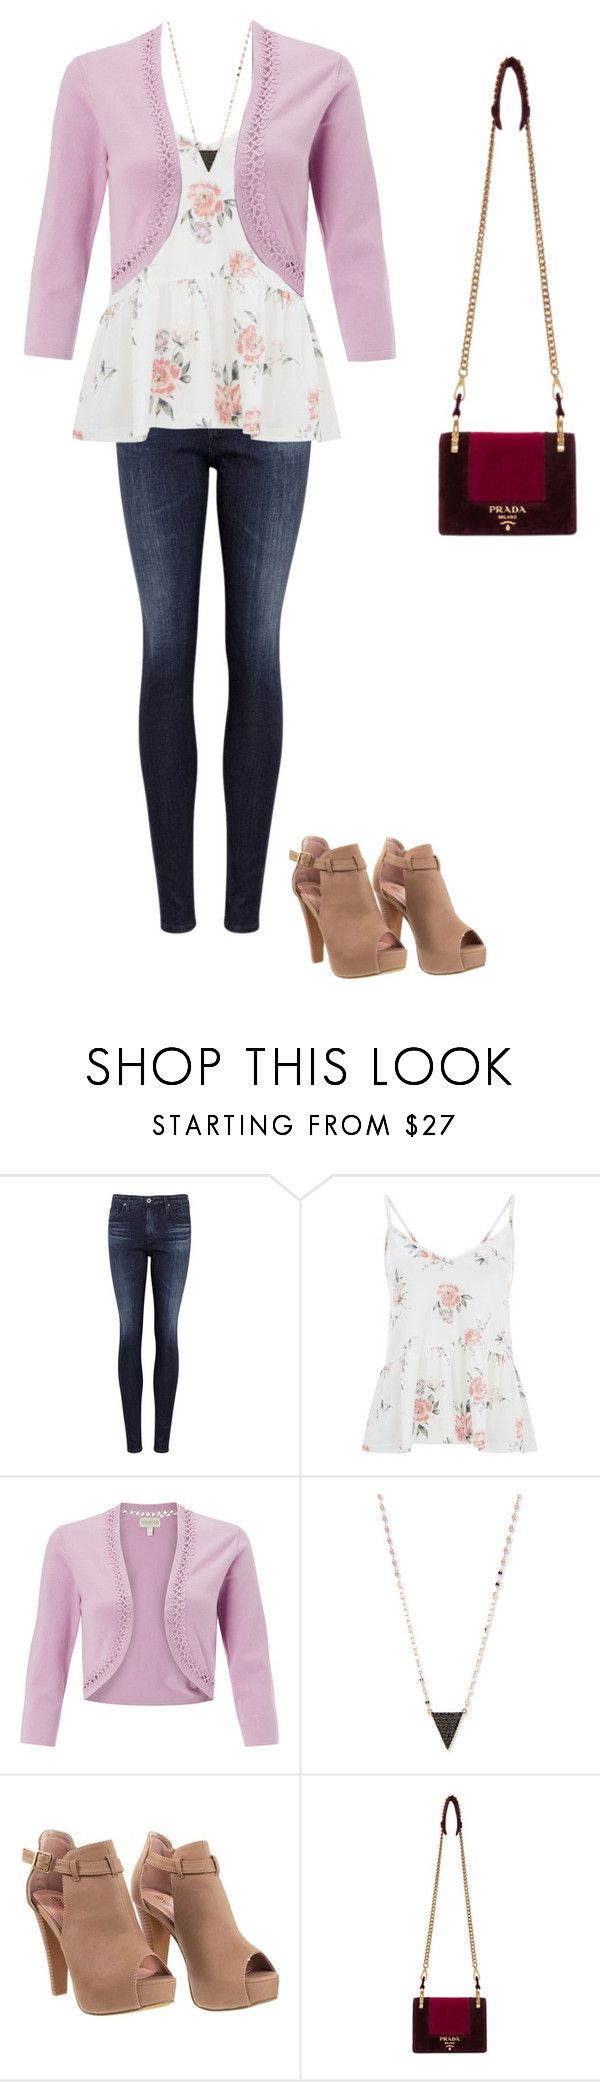 Casual Date Night??? by skylarmuffin on Polyvore featuring Monsoon, AG Adriano Goldschmied, Prada and Lana